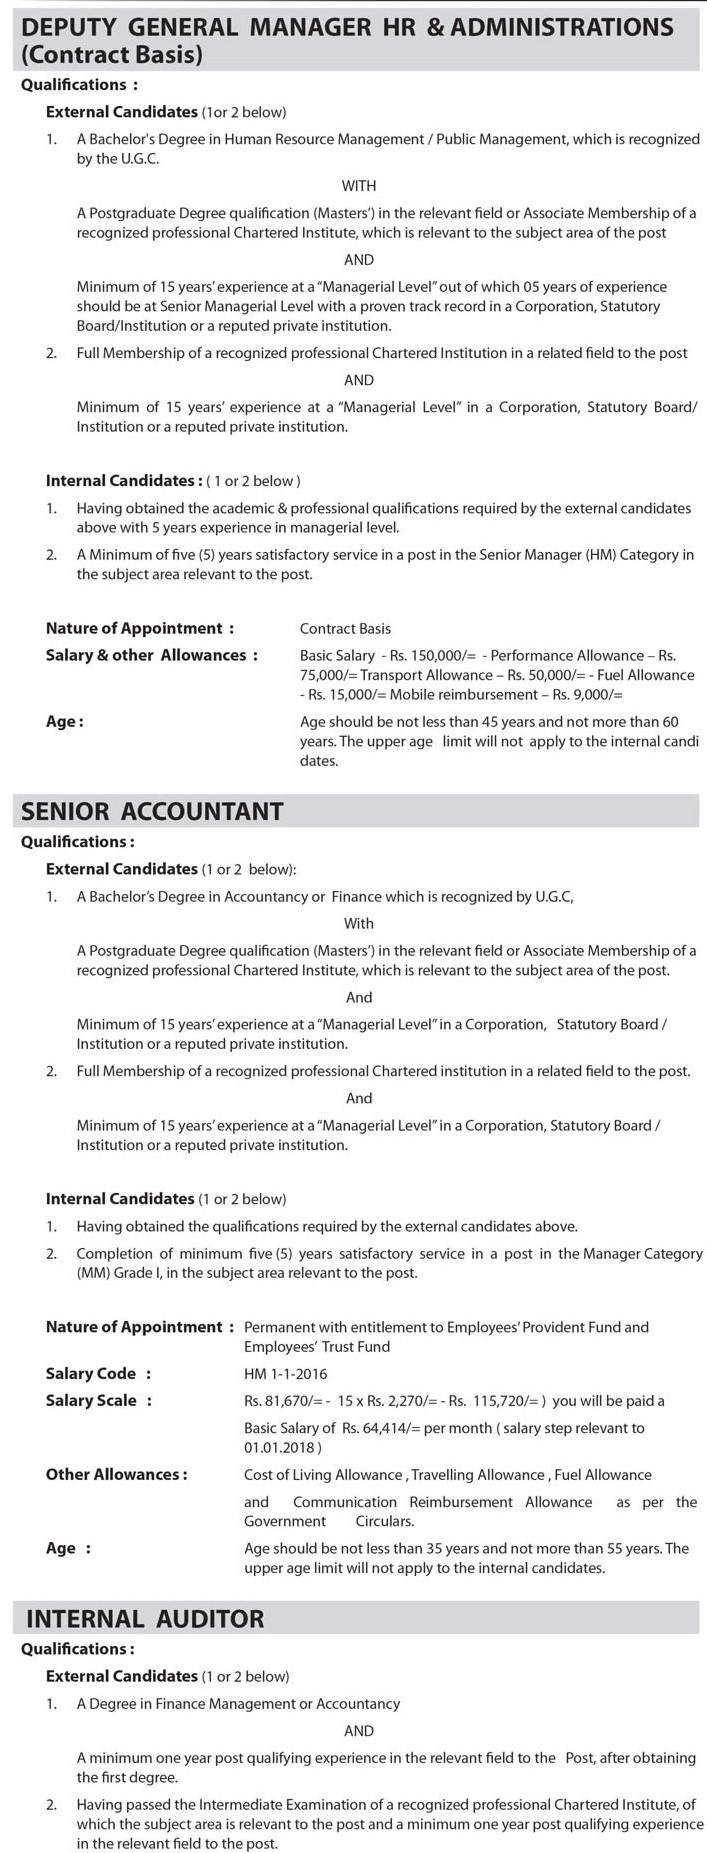 Deputy General Manager, Senior Accountant, Internal Auditor